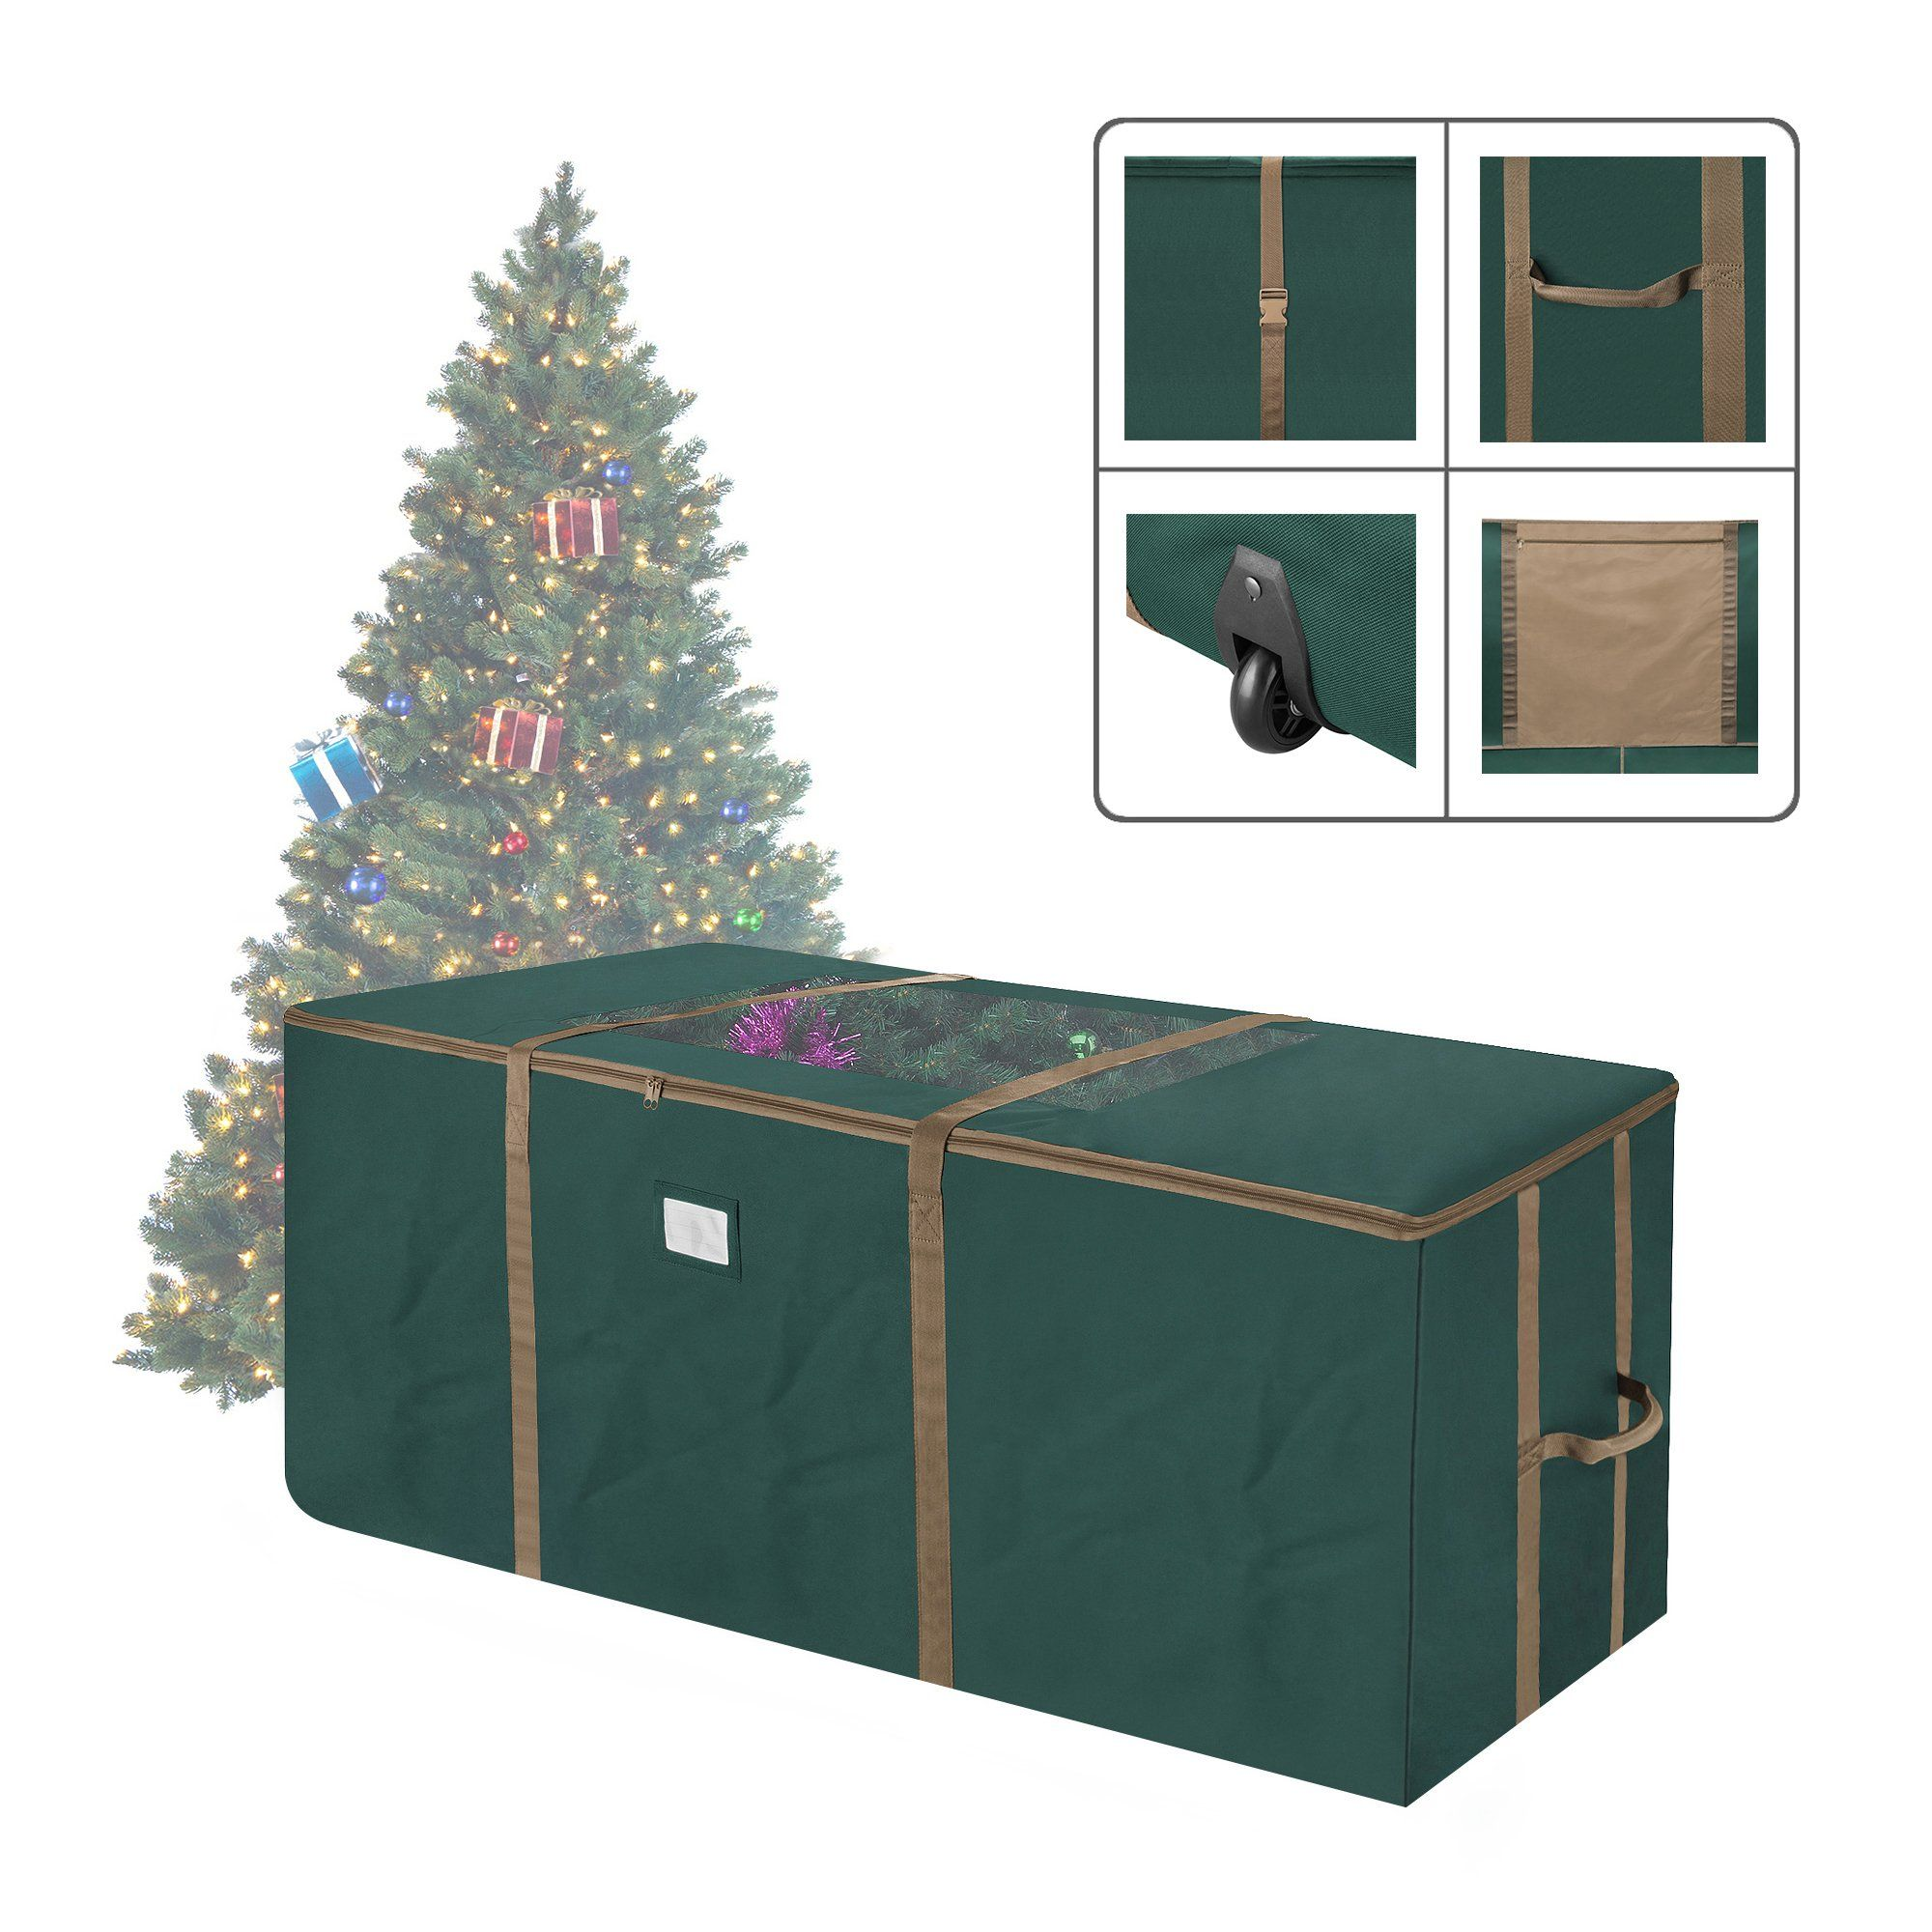 Elf Stor 83dt5171 Rolling Duffel Style Christmas Storage Bag With Window For 12 Foot Tree G Christmas Tree Storage Bag Christmas Tree Storage Tree Storage Bag